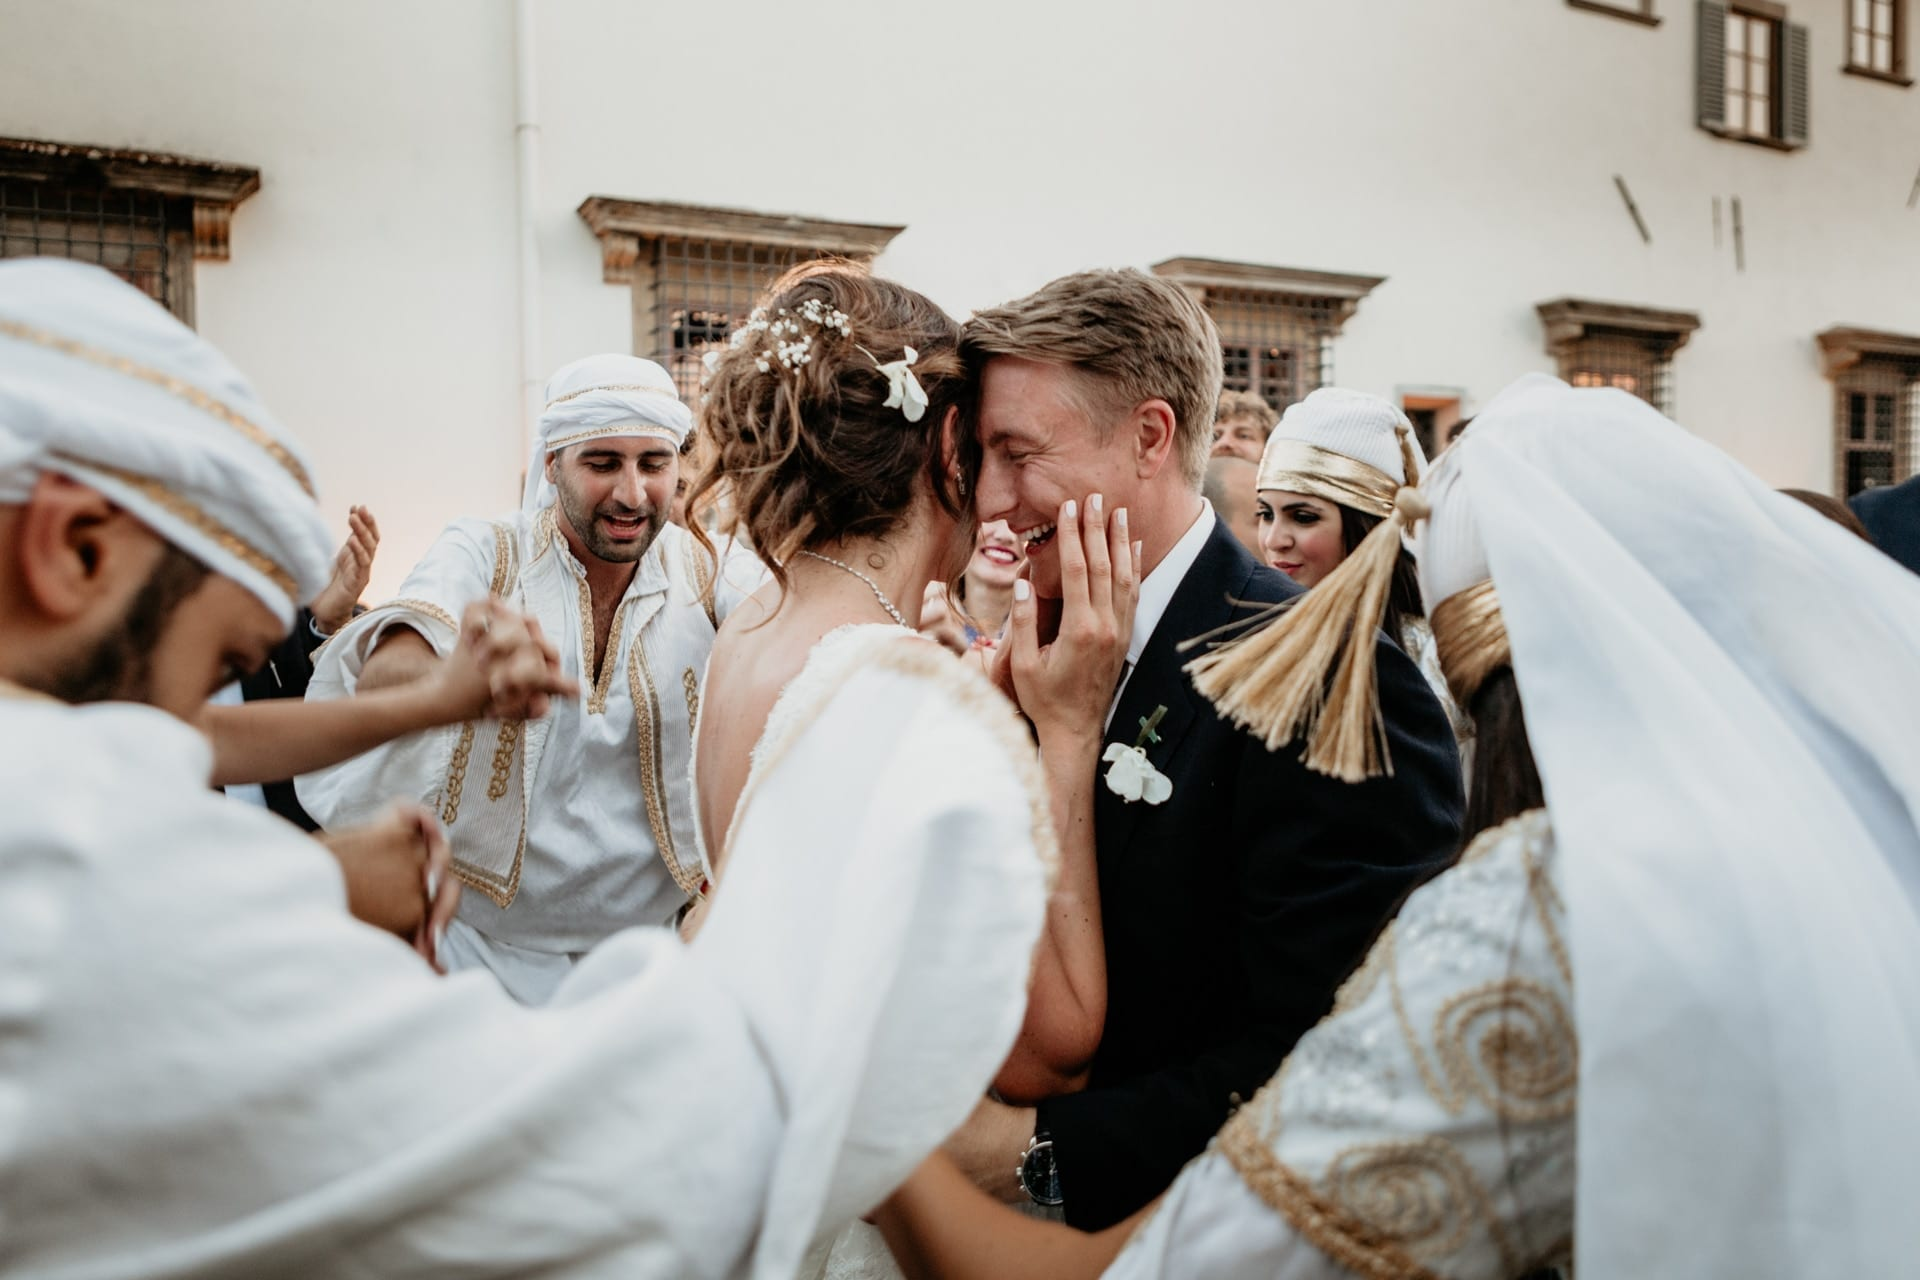 https://s3-eu-central-1.amazonaws.com/righiphotography-com/wp-content/uploads/2020/02/02183144/Wedding-Photo-No-Pose-Studio-Fotografico-Righi-RIGHI-71.jpg